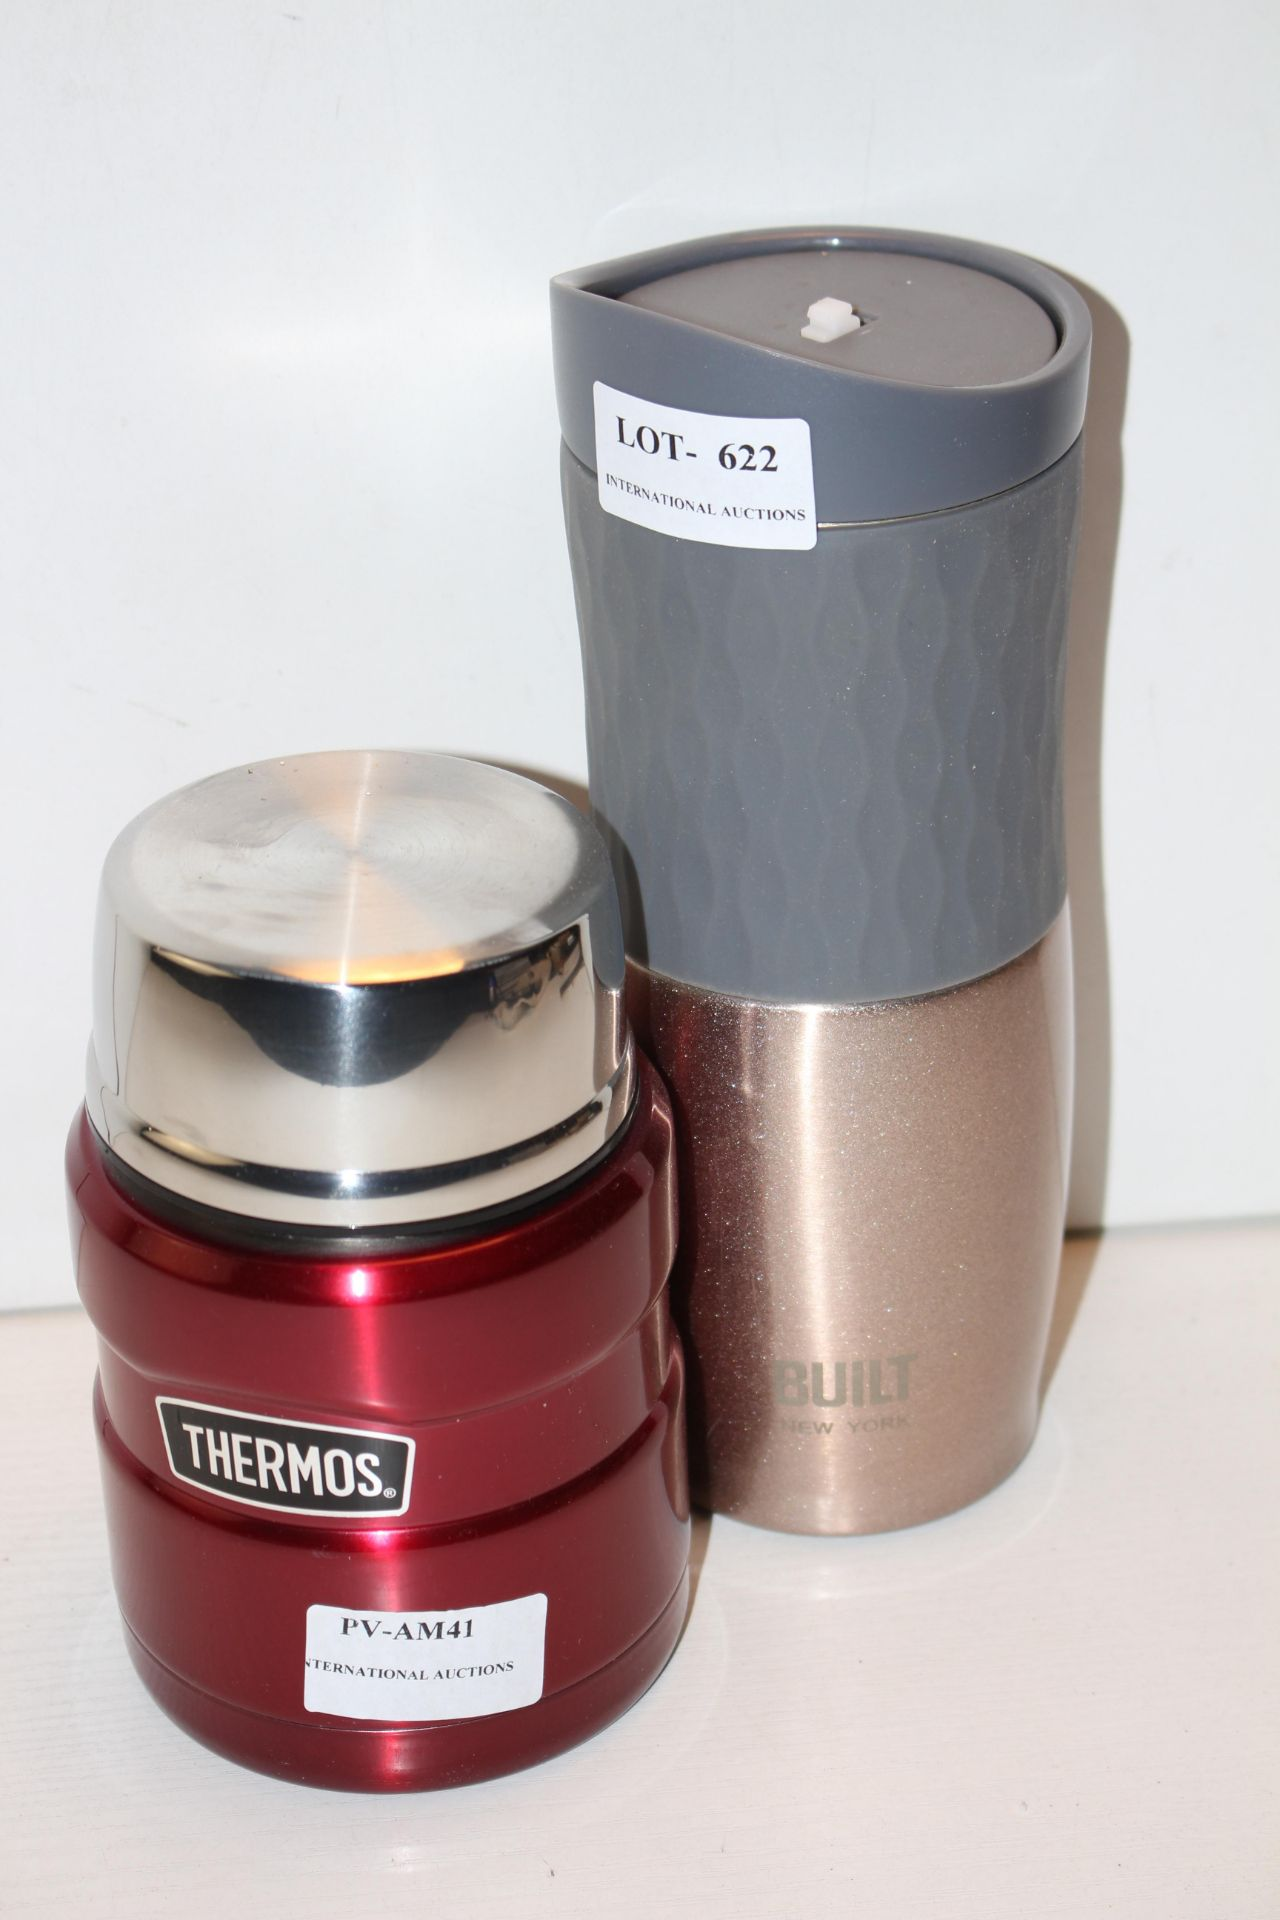 X2 THERMOS FLASKSCondition ReportAppraisal Available on Request- All Items are Unchecked/Untested